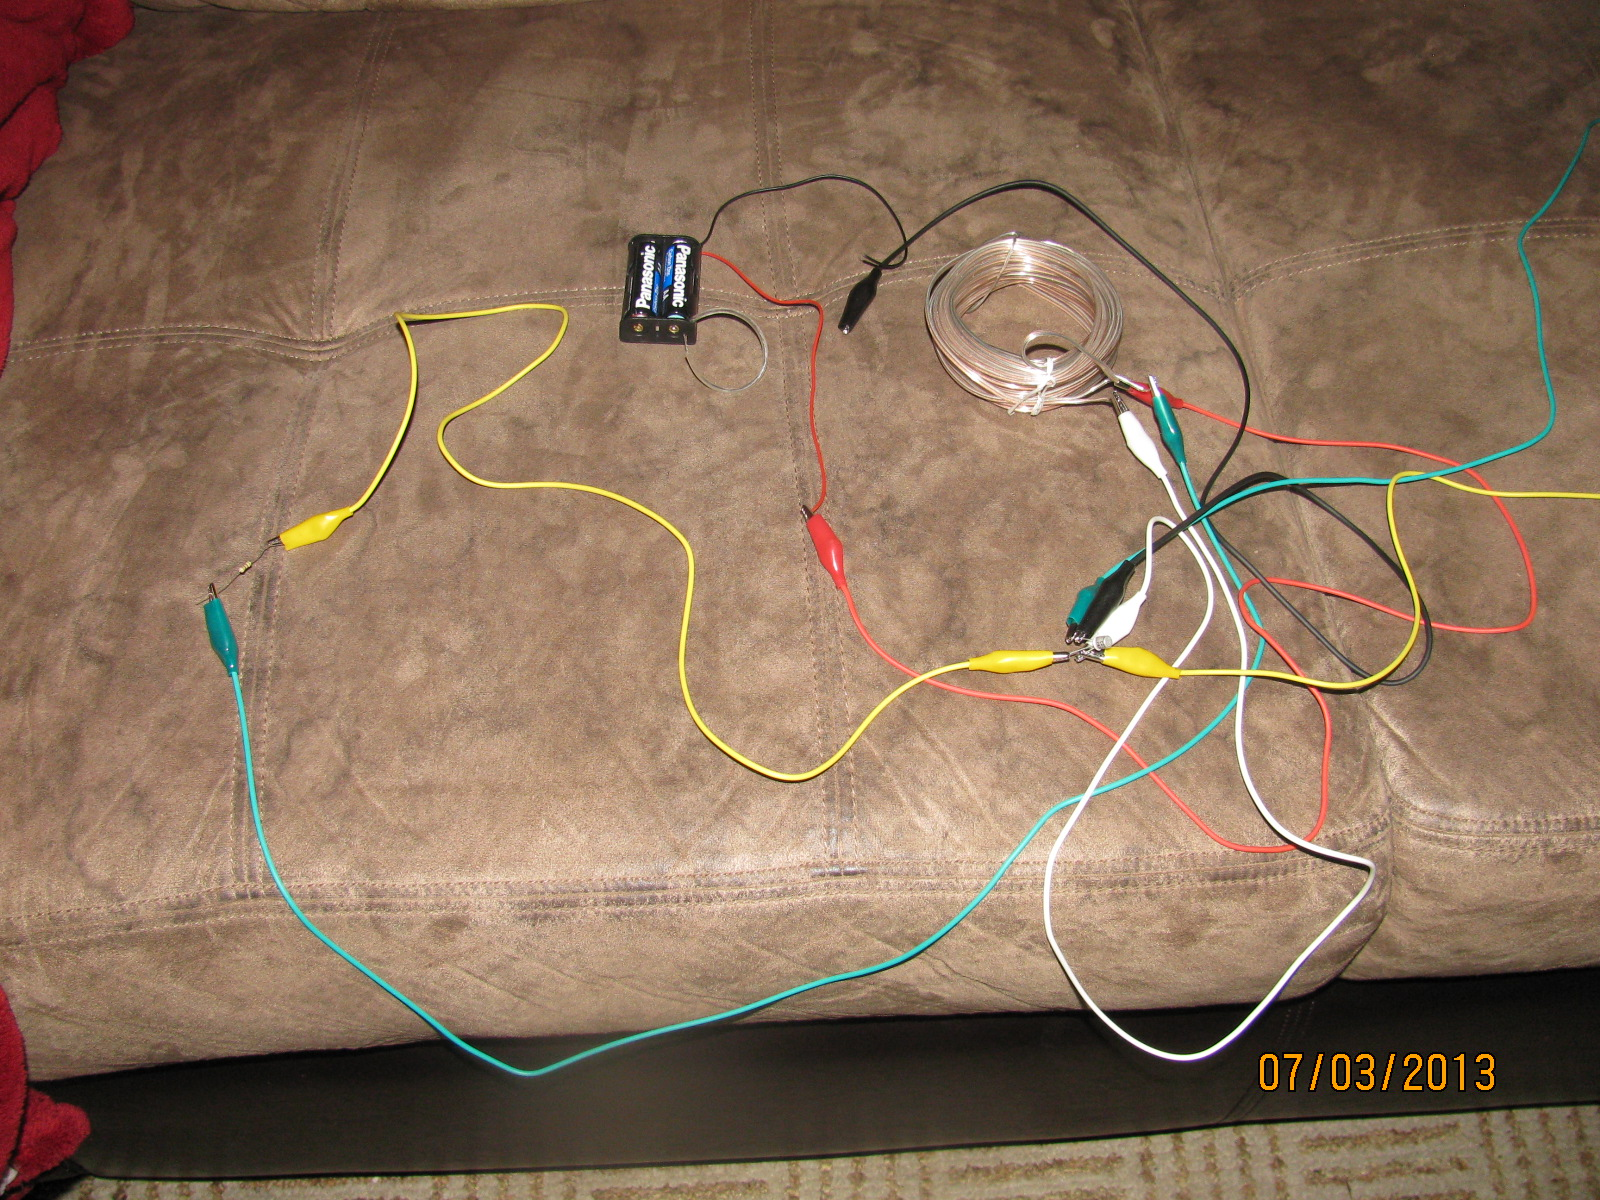 5 Watt Led Driver Circuit Diagram 2005 Ford Escape Trailer Wiring Illuminating Four 1 Leds With 5v Cell Joule Thief